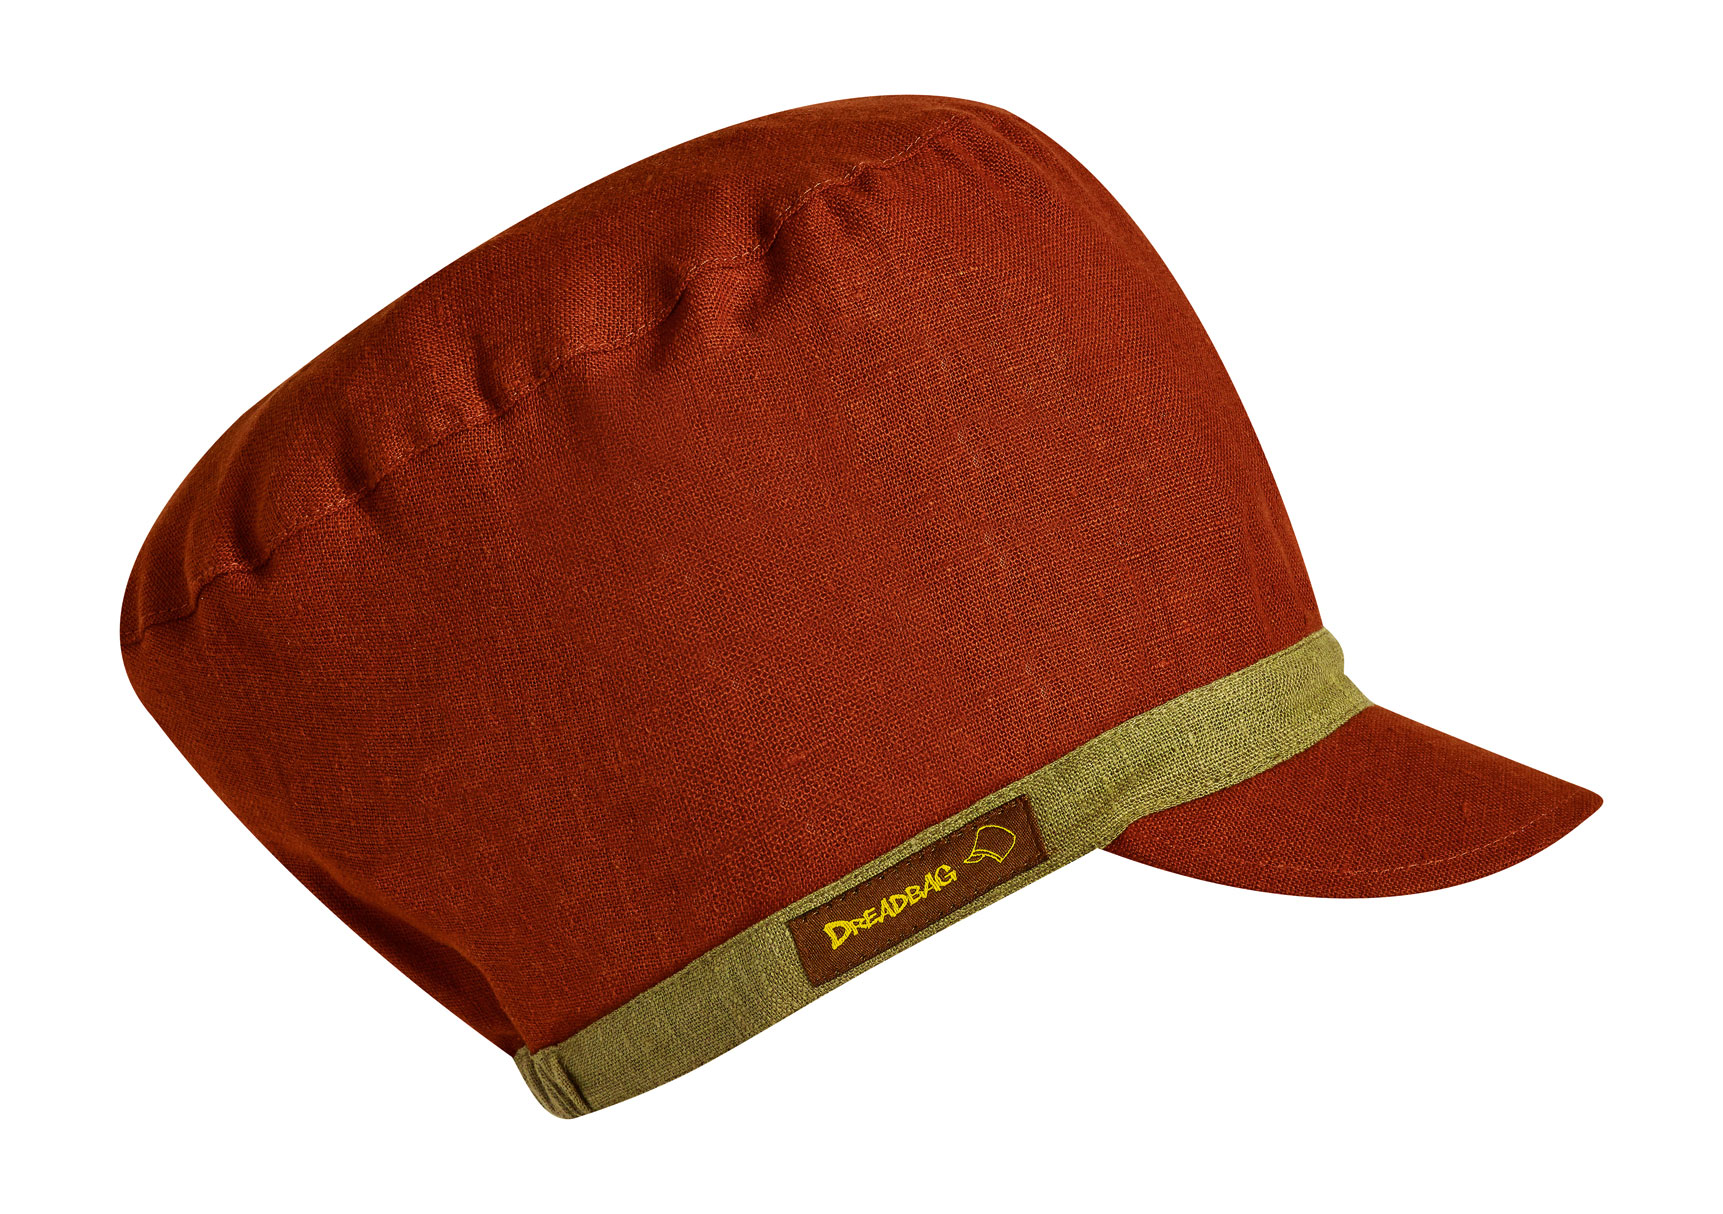 Redbrown dreadbag linen